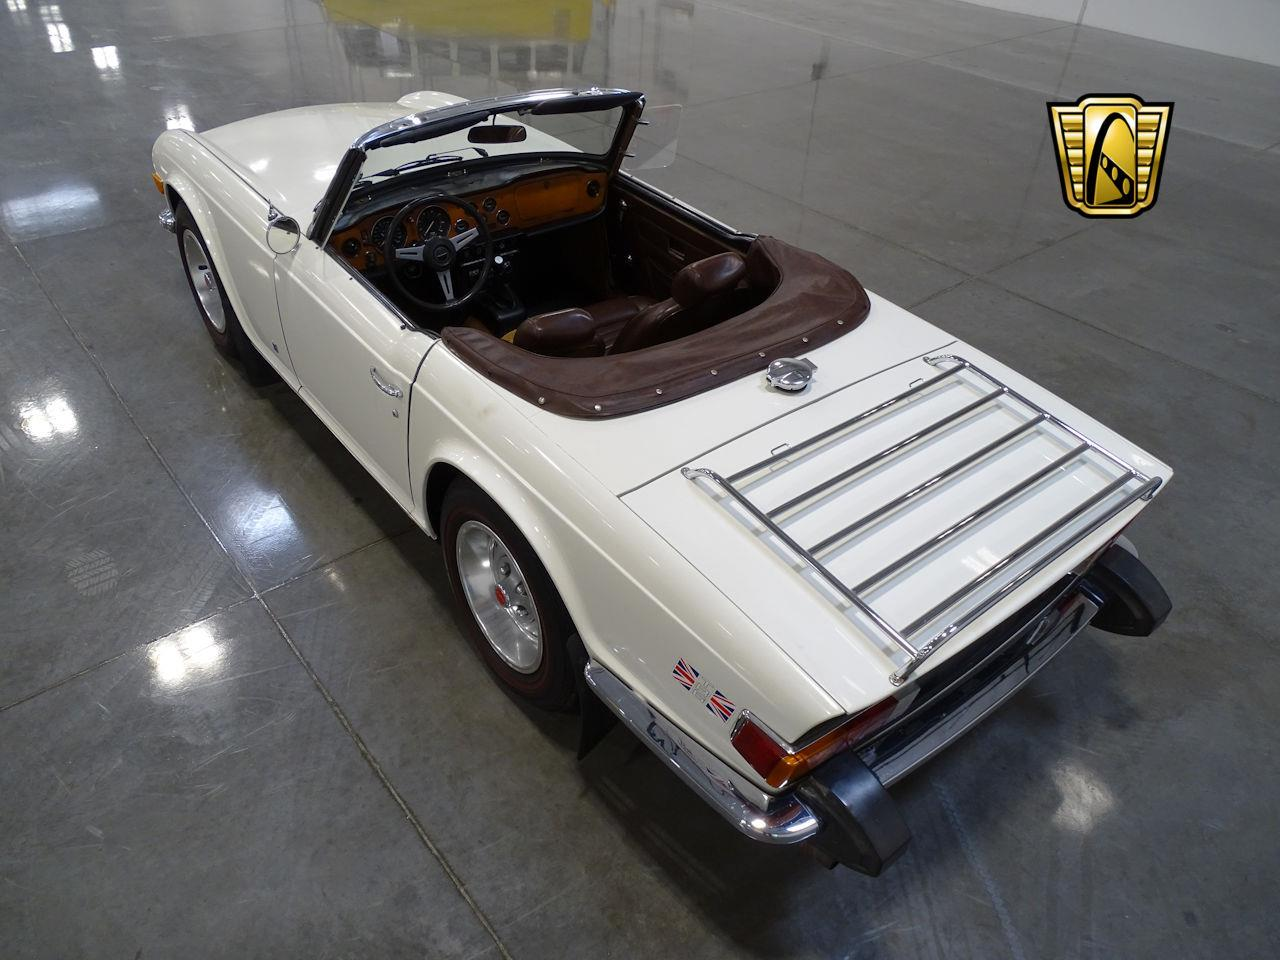 Large Picture of 1974 Triumph TR6 located in Deer Valley Arizona Offered by Gateway Classic Cars - Scottsdale - MCYM